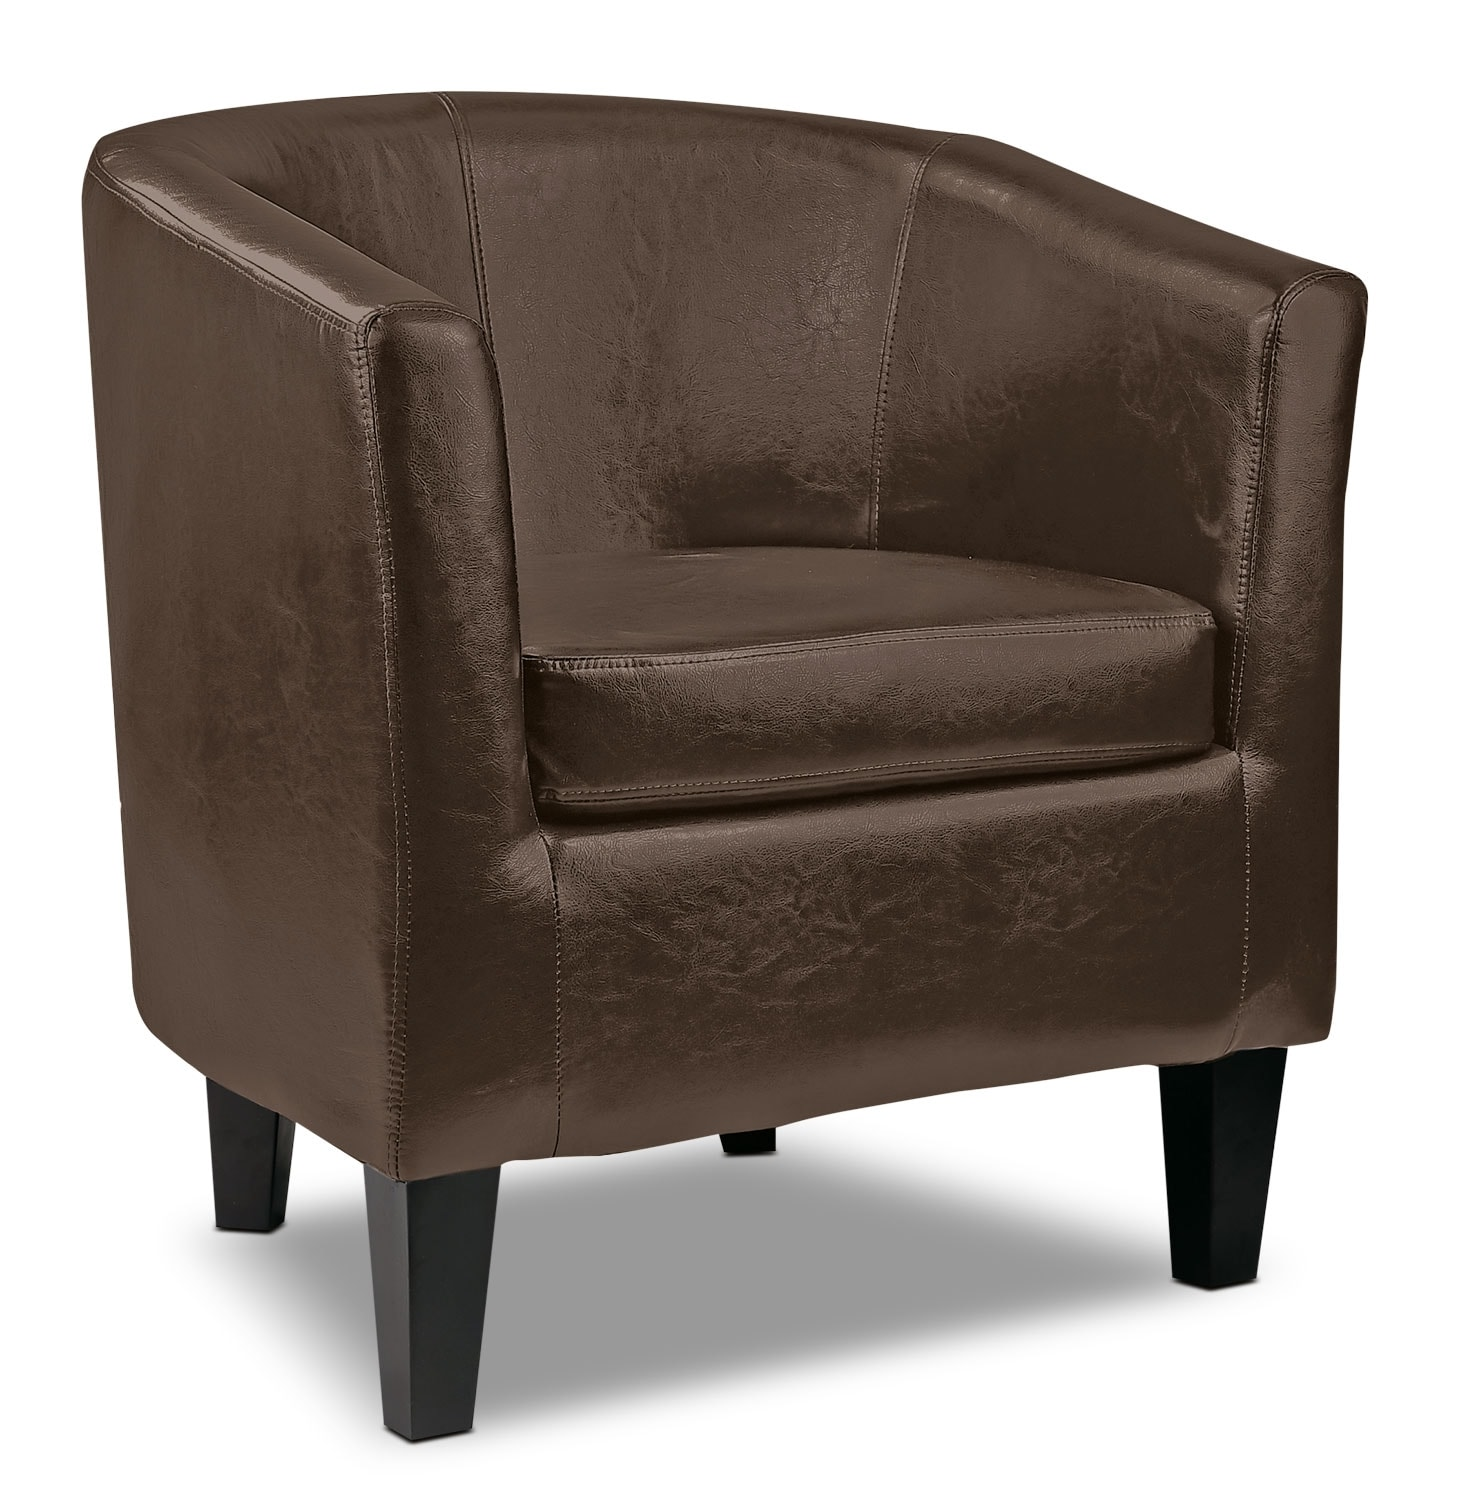 Living Room Furniture - LAD Bonded Leather Accent Club Chair – Dark Brown